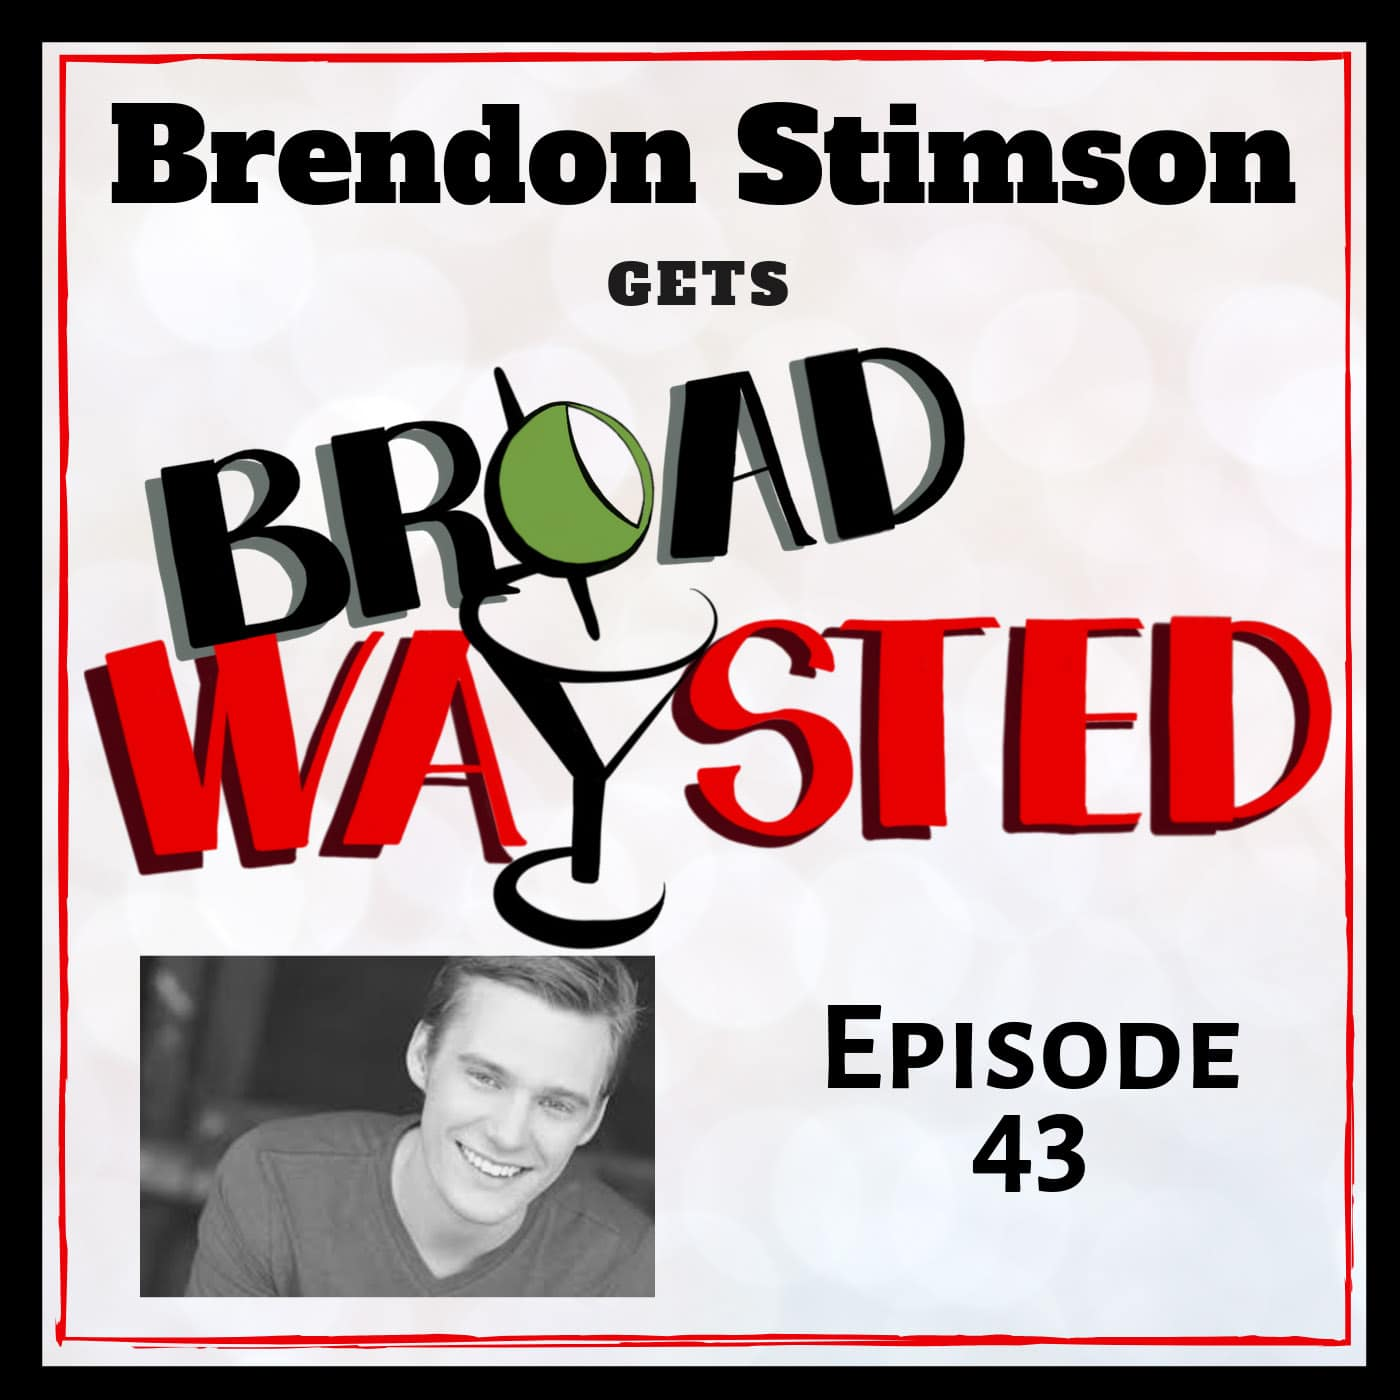 Broadwaysted Ep 43 Brendon Stimson